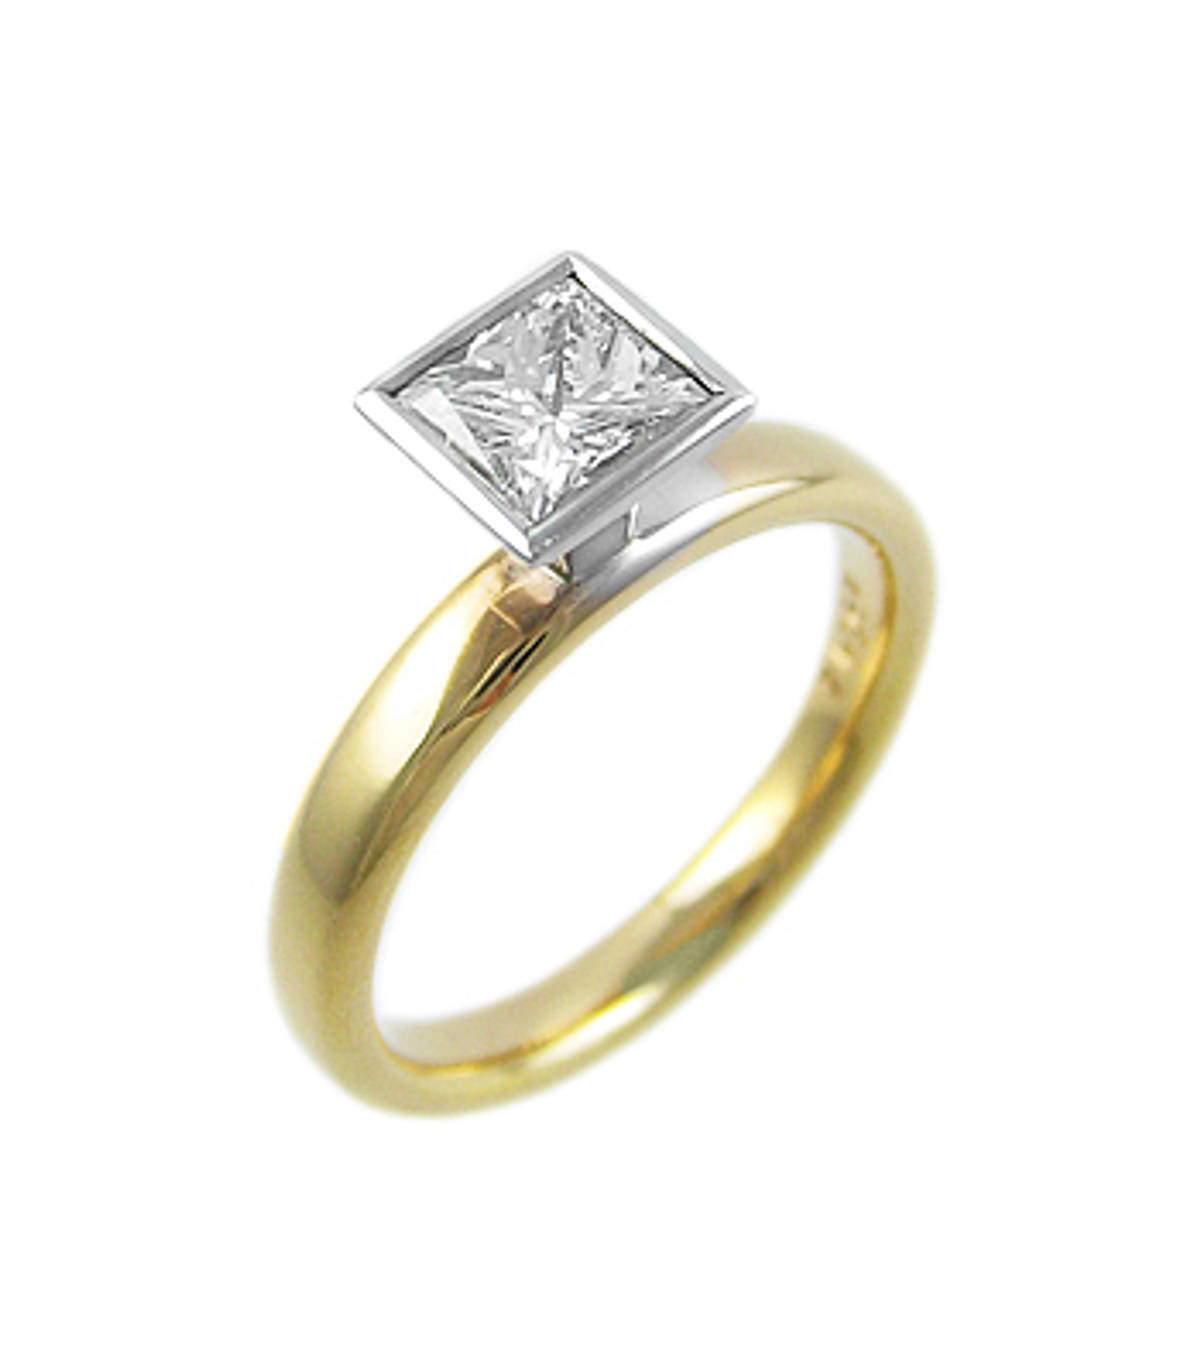 Princess cut diamond rubover set solitaire ring in 18 ct red and white gold